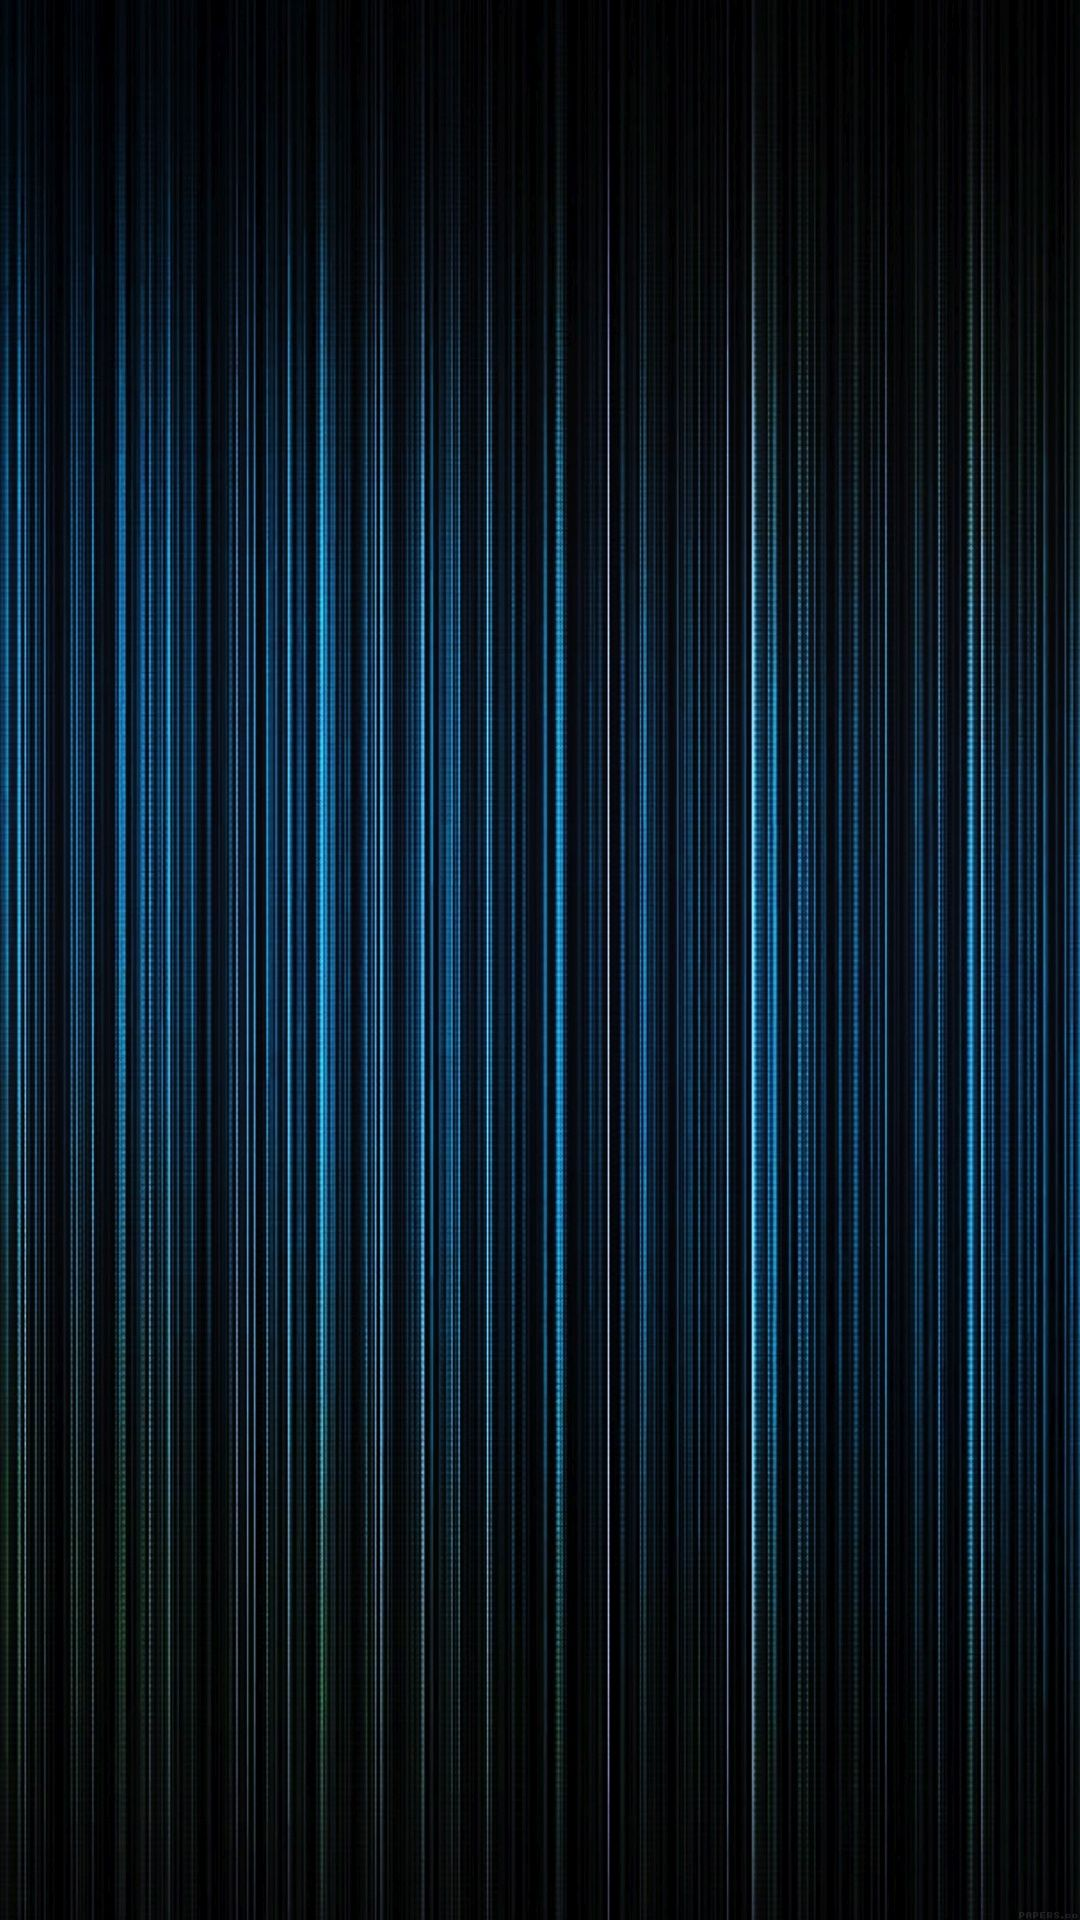 Vertical Blue Lines Abstract iPhone 6+ HD Wallpaper | Shading | Android wallpaper blue, Blue ...